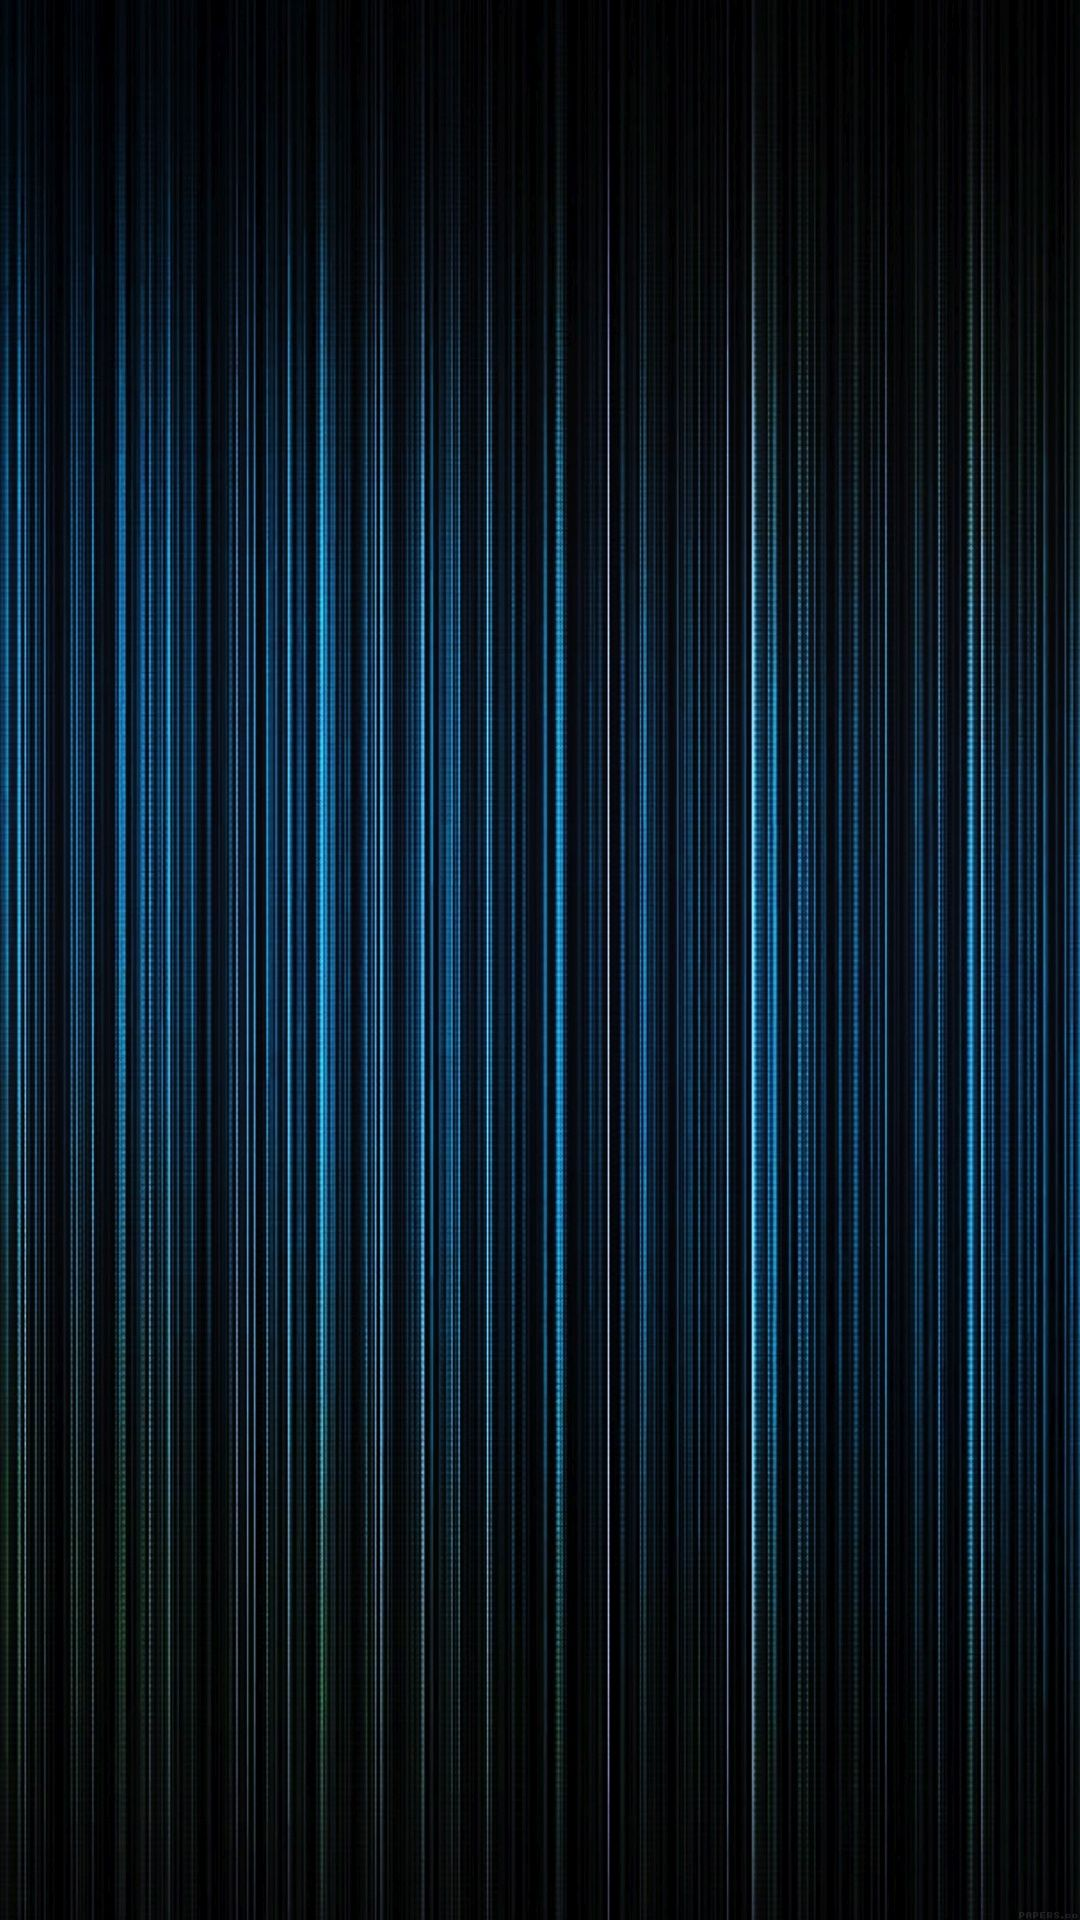 Vertical Blue Lines Abstract iPhone 6+ HD Wallpaper | Shading | Android wallpaper blue, Blue ...